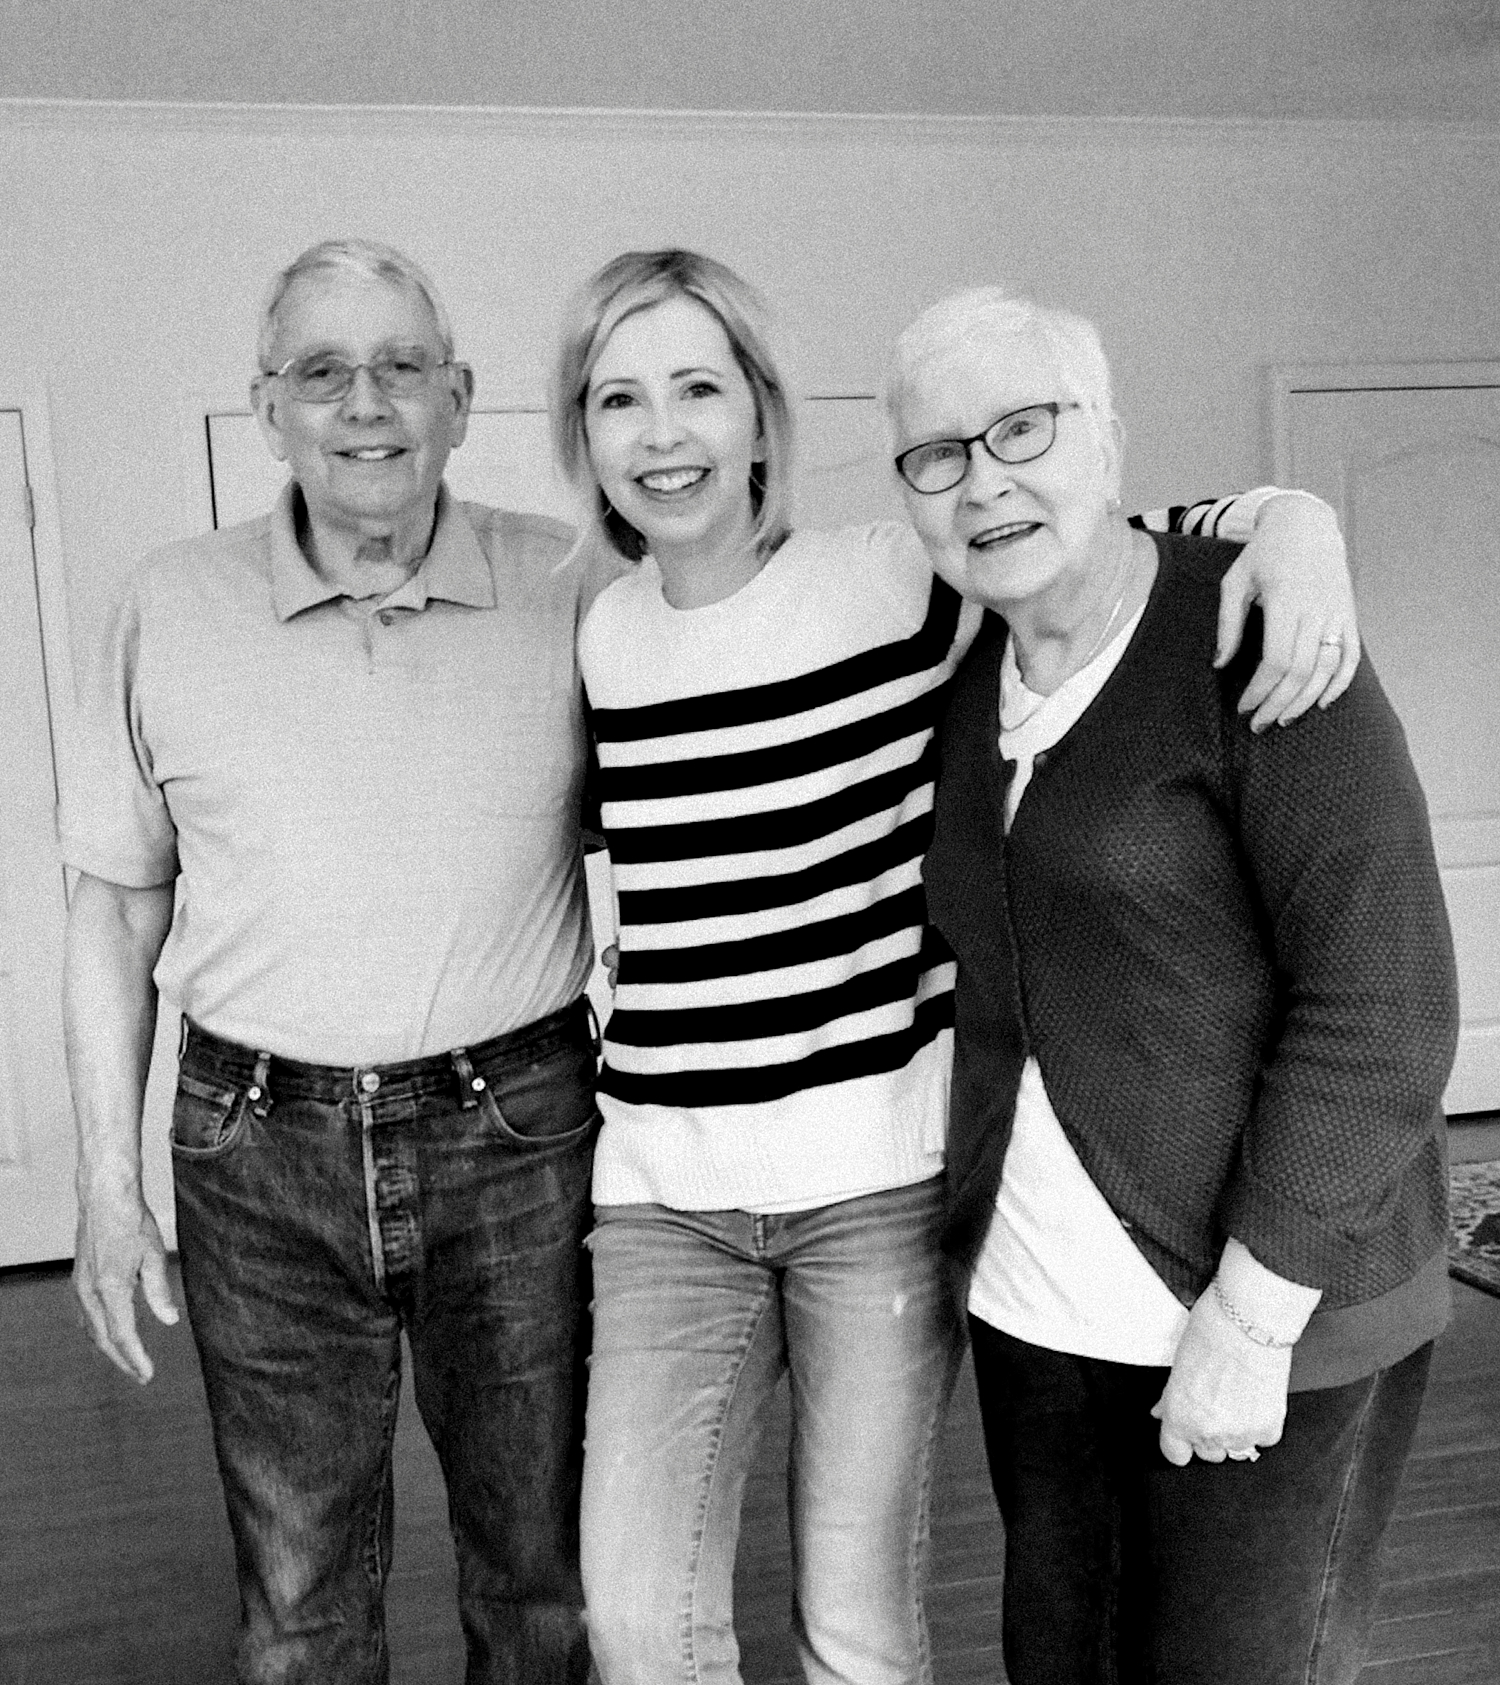 Grainy, or not, I have a great picture with my parents. Get in the frame, mamas!!